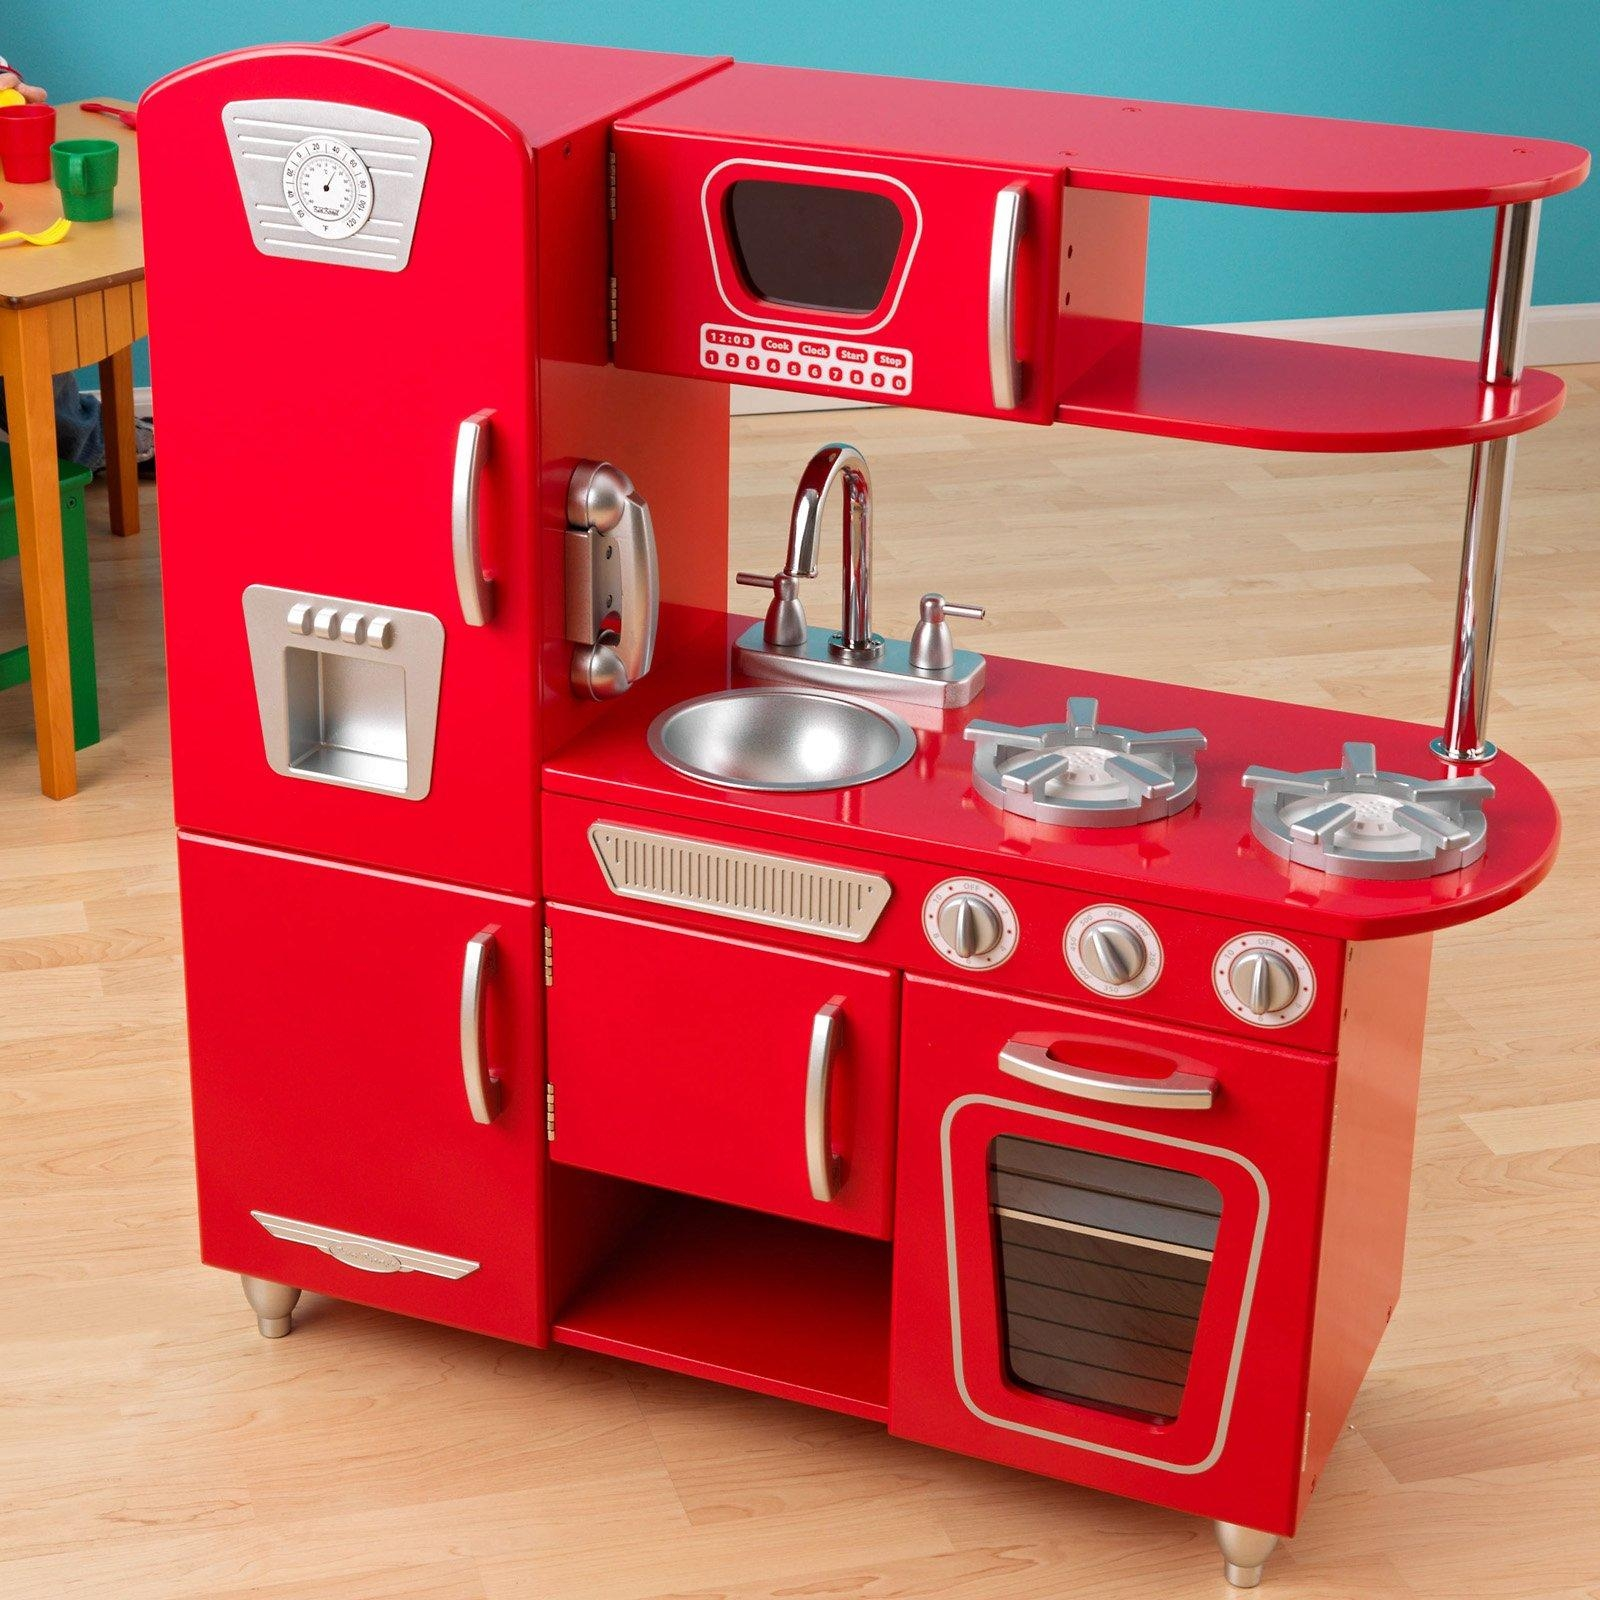 Permalink to Small Baby Kitchen Set